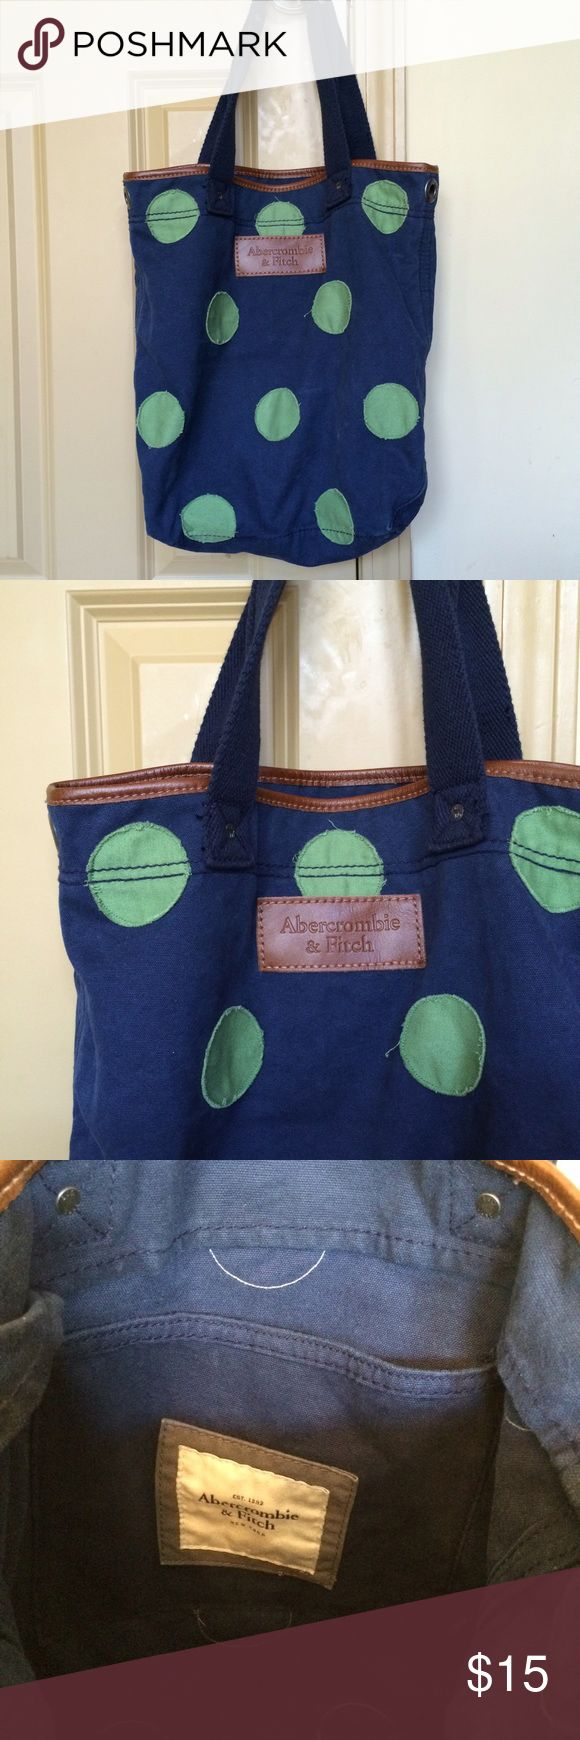 """Abercrombie and Fitch tote bag Abercrombie navy with green polka dot canvas tote. 14""""h x 12""""w x 5""""d with 9"""" handle drop. Grommets on each side. One flap pocket on the inside. Great condition. Abercrombie & Fitch Bags Totes"""